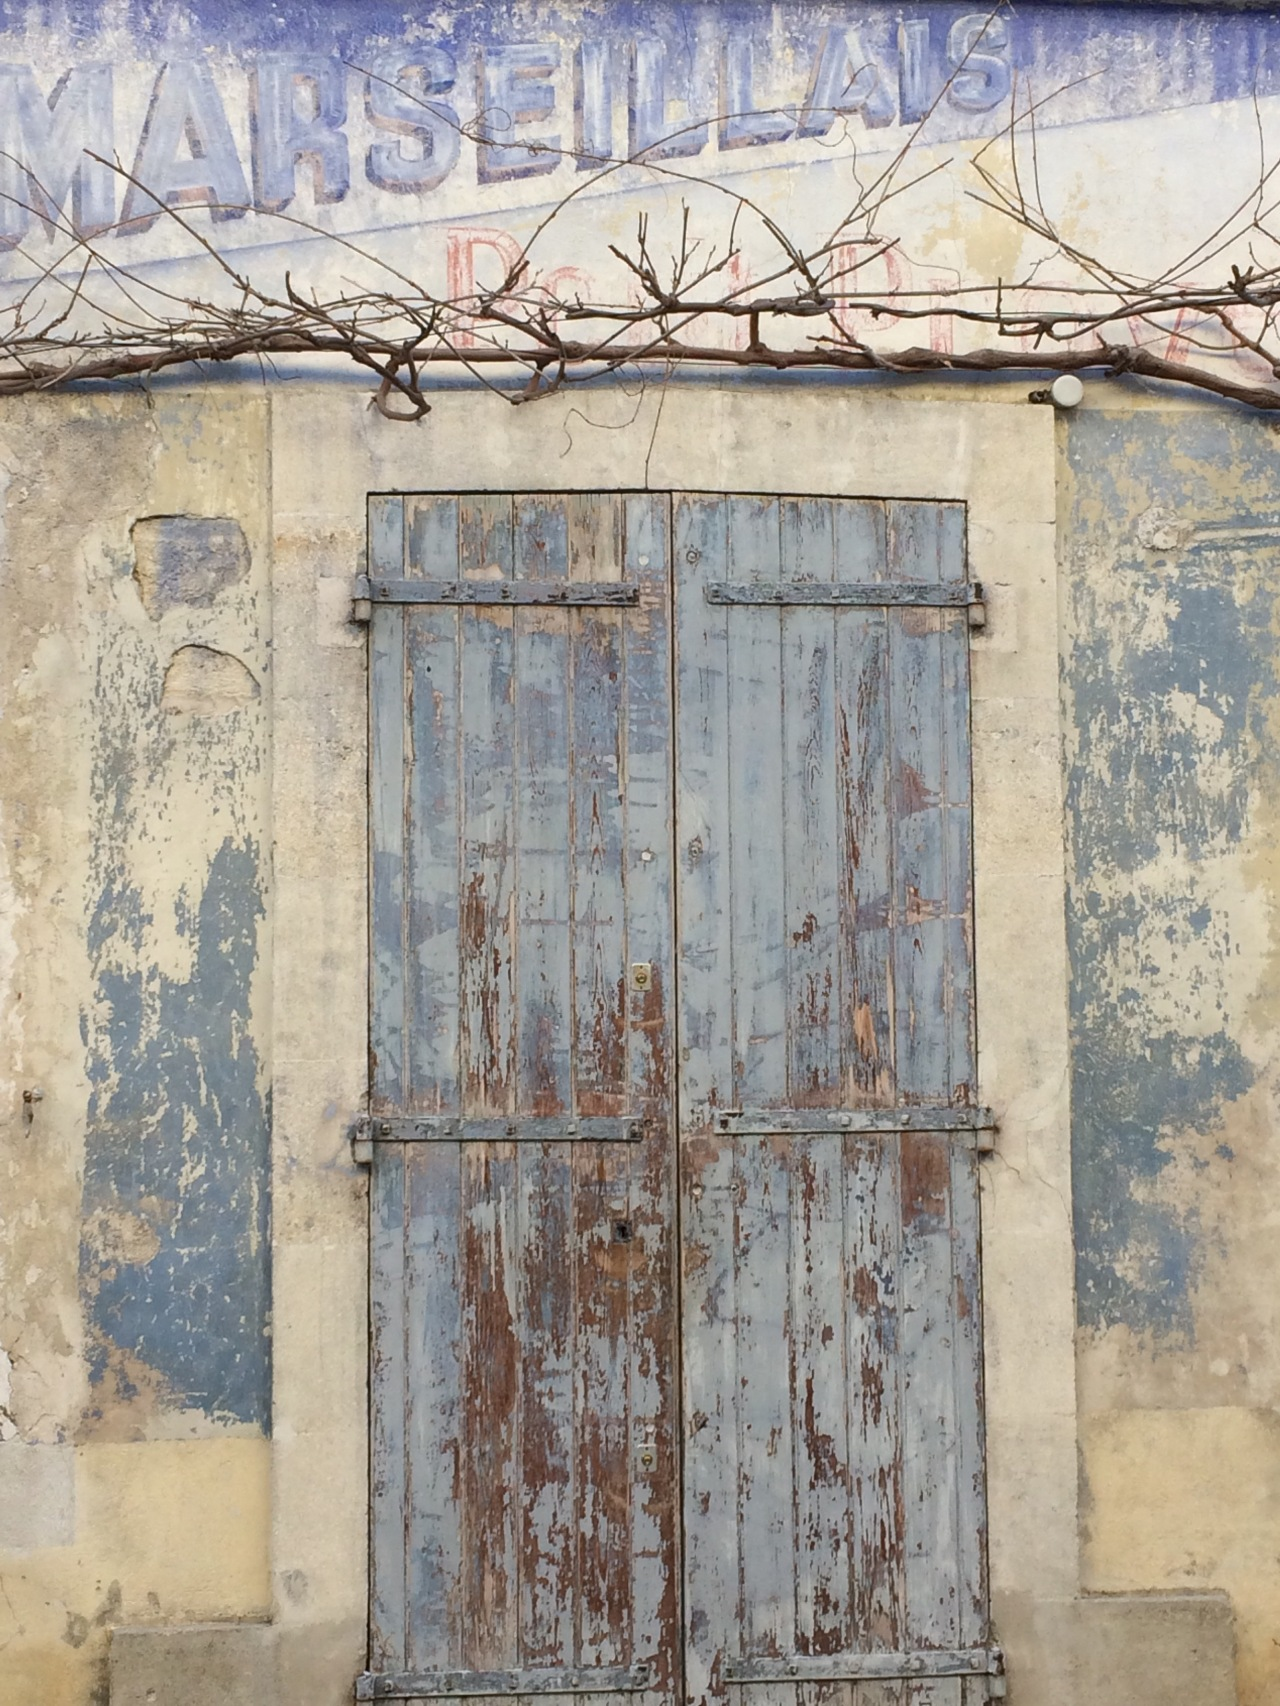 Peeling Paint, Shabby Shutters & Intricate Ironwork – How wonderful